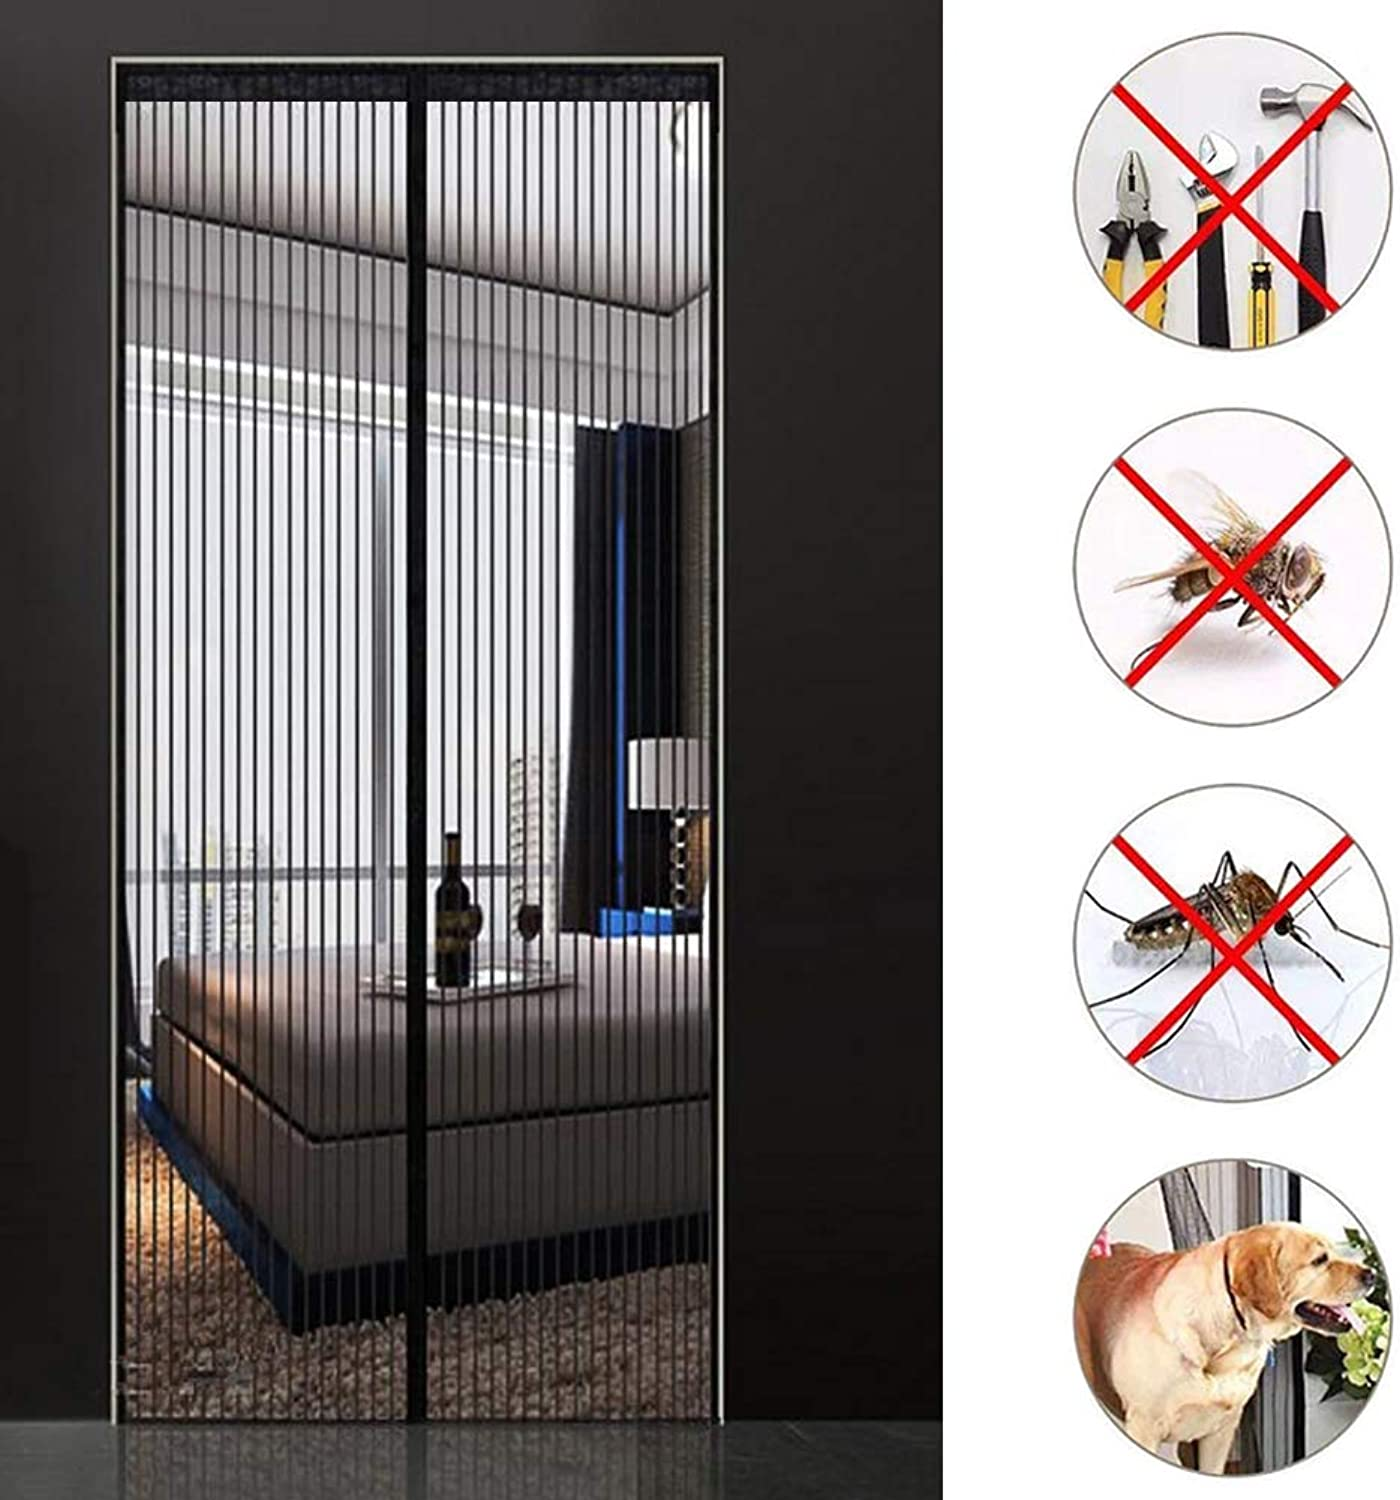 Magnetic Screen Door, Screen Easy to Install Without Drilling, Heavy Duty Screen Bug Mesh Curtain Fly Screens, Keep Bugs Out Lets Fresh Air in, Fits Door Up to 165(W) x 225(H) cm